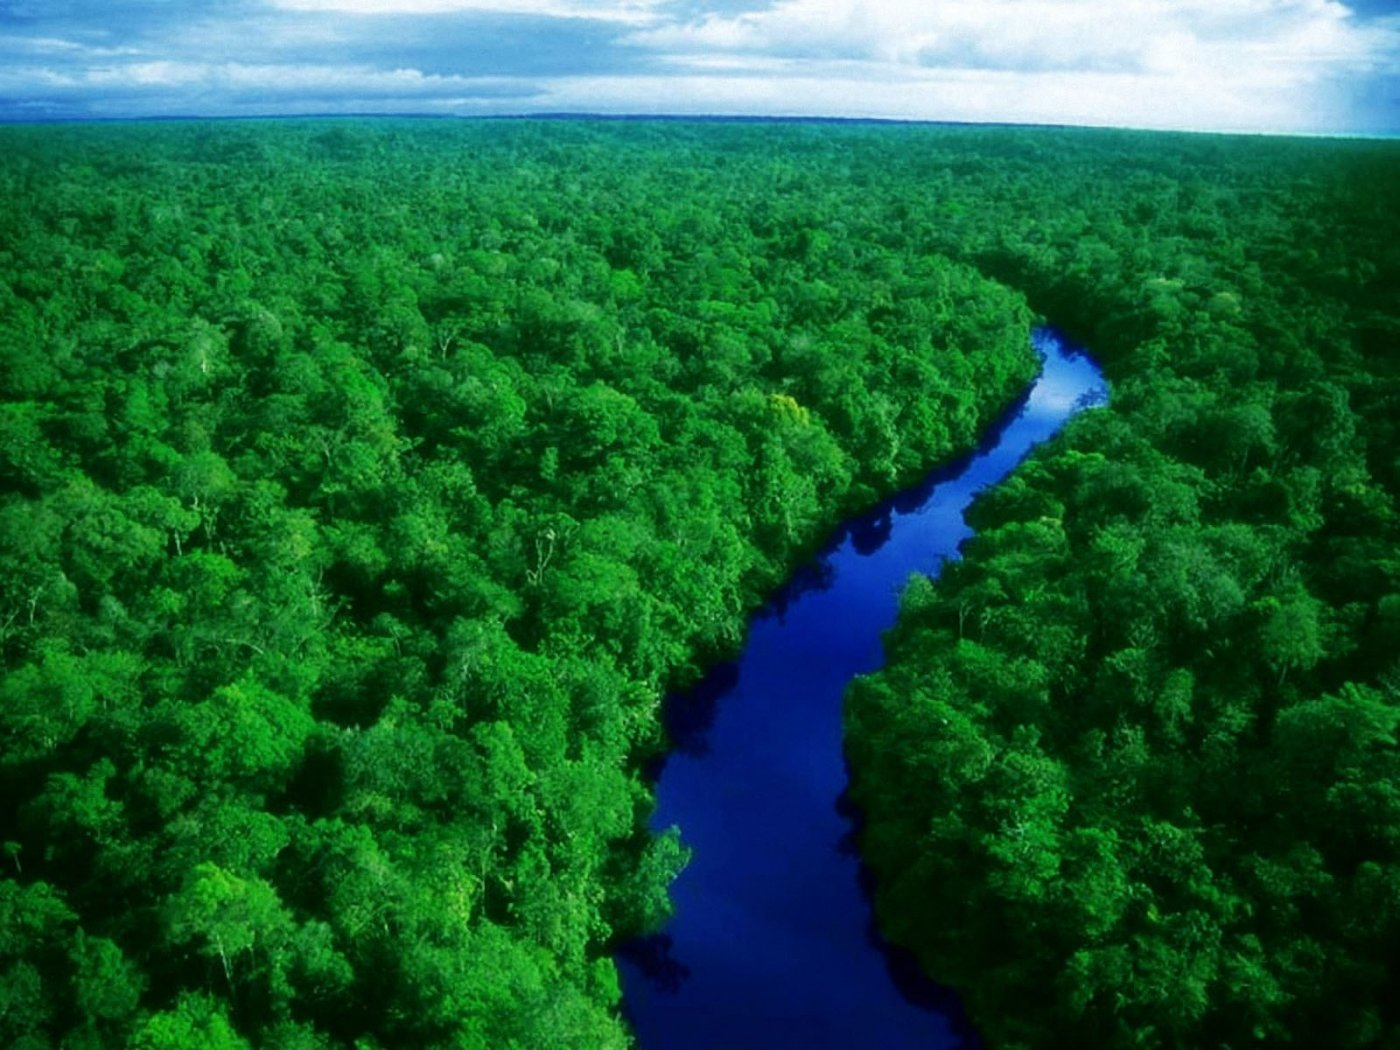 Free Download Amazon Forest 1400x1050 Wallpapersamazon